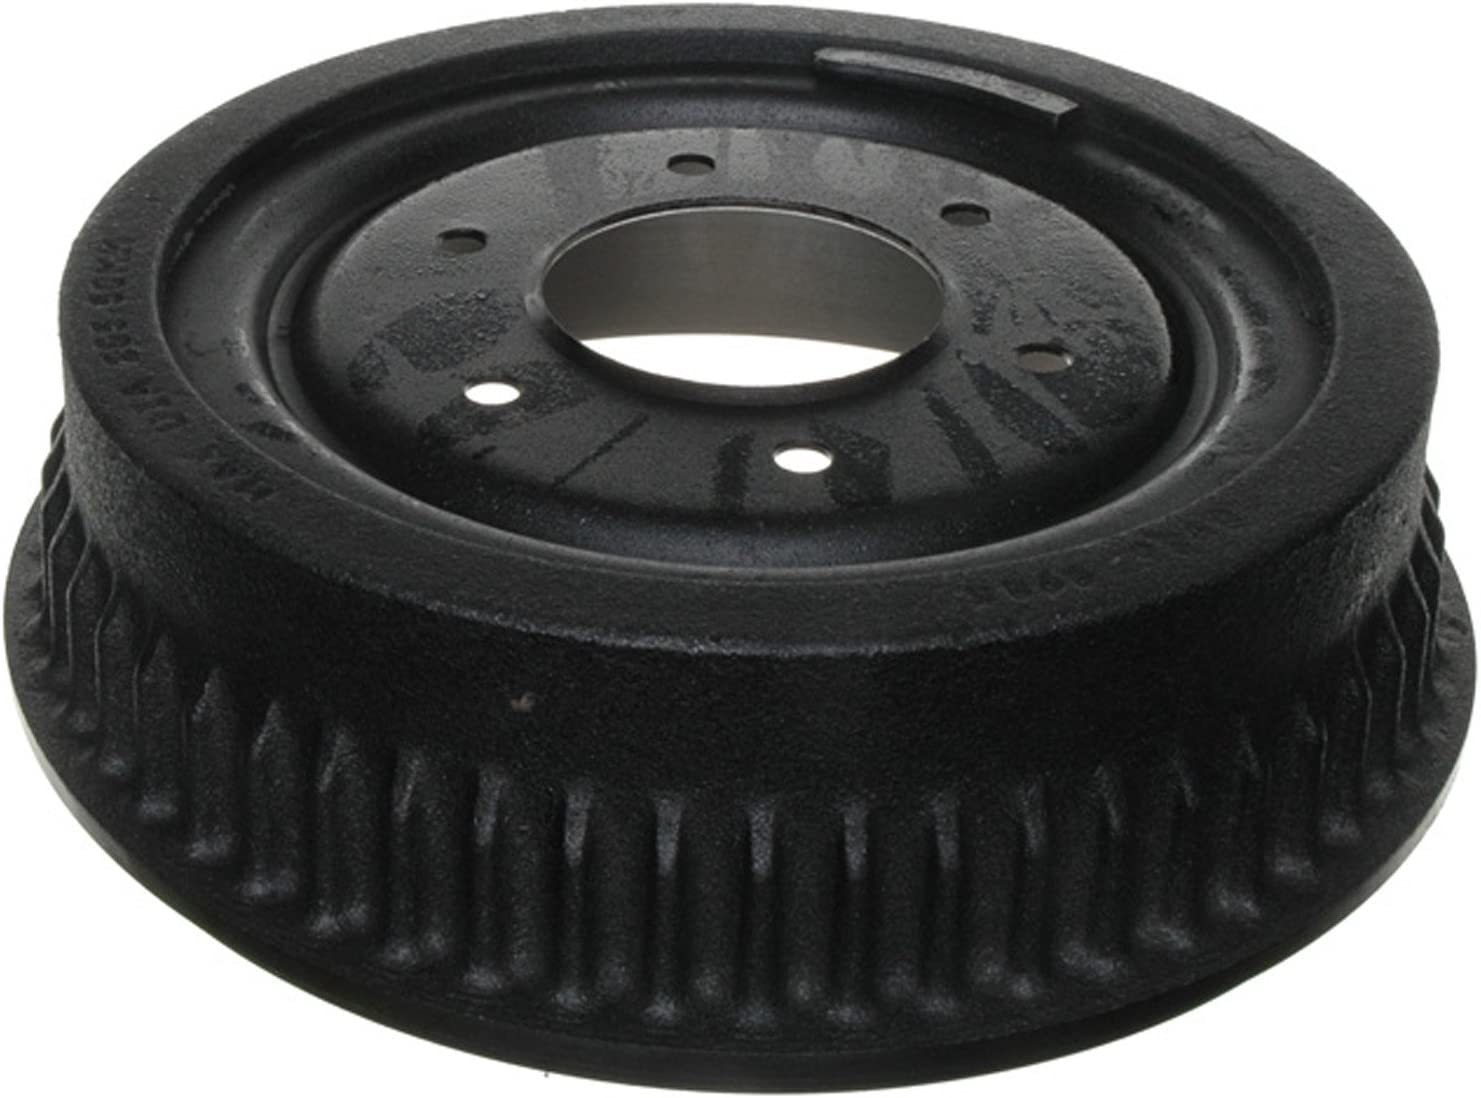 ACDelco 18B255 Professional Durastop Rear Brake Drum Assembly